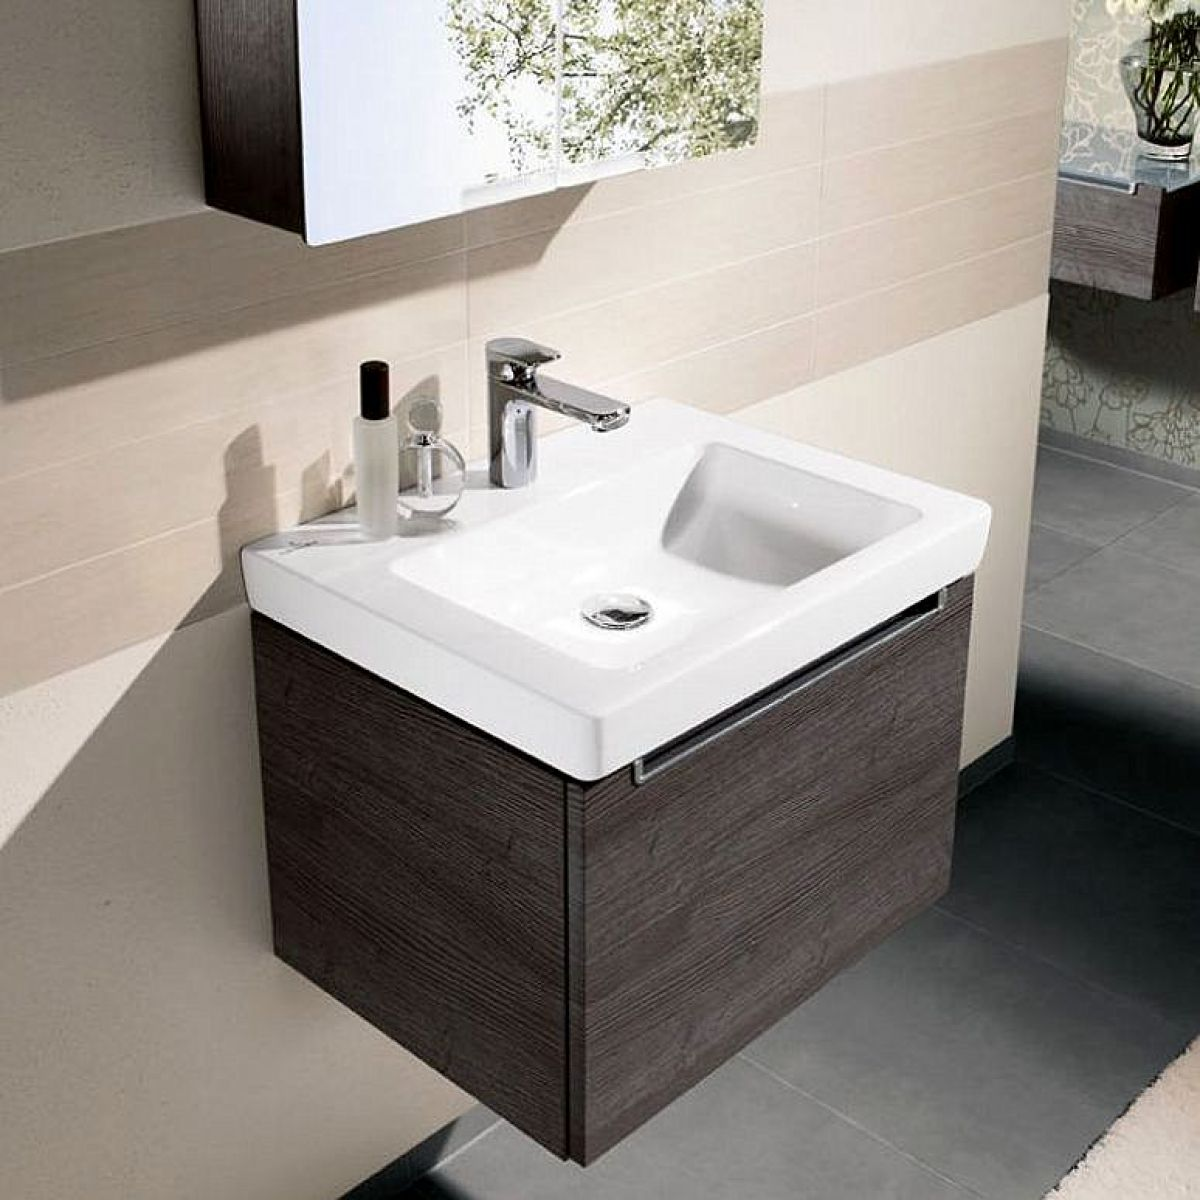 Villeroy & Boch Subway 2.0 Washbasin Vanity Unit